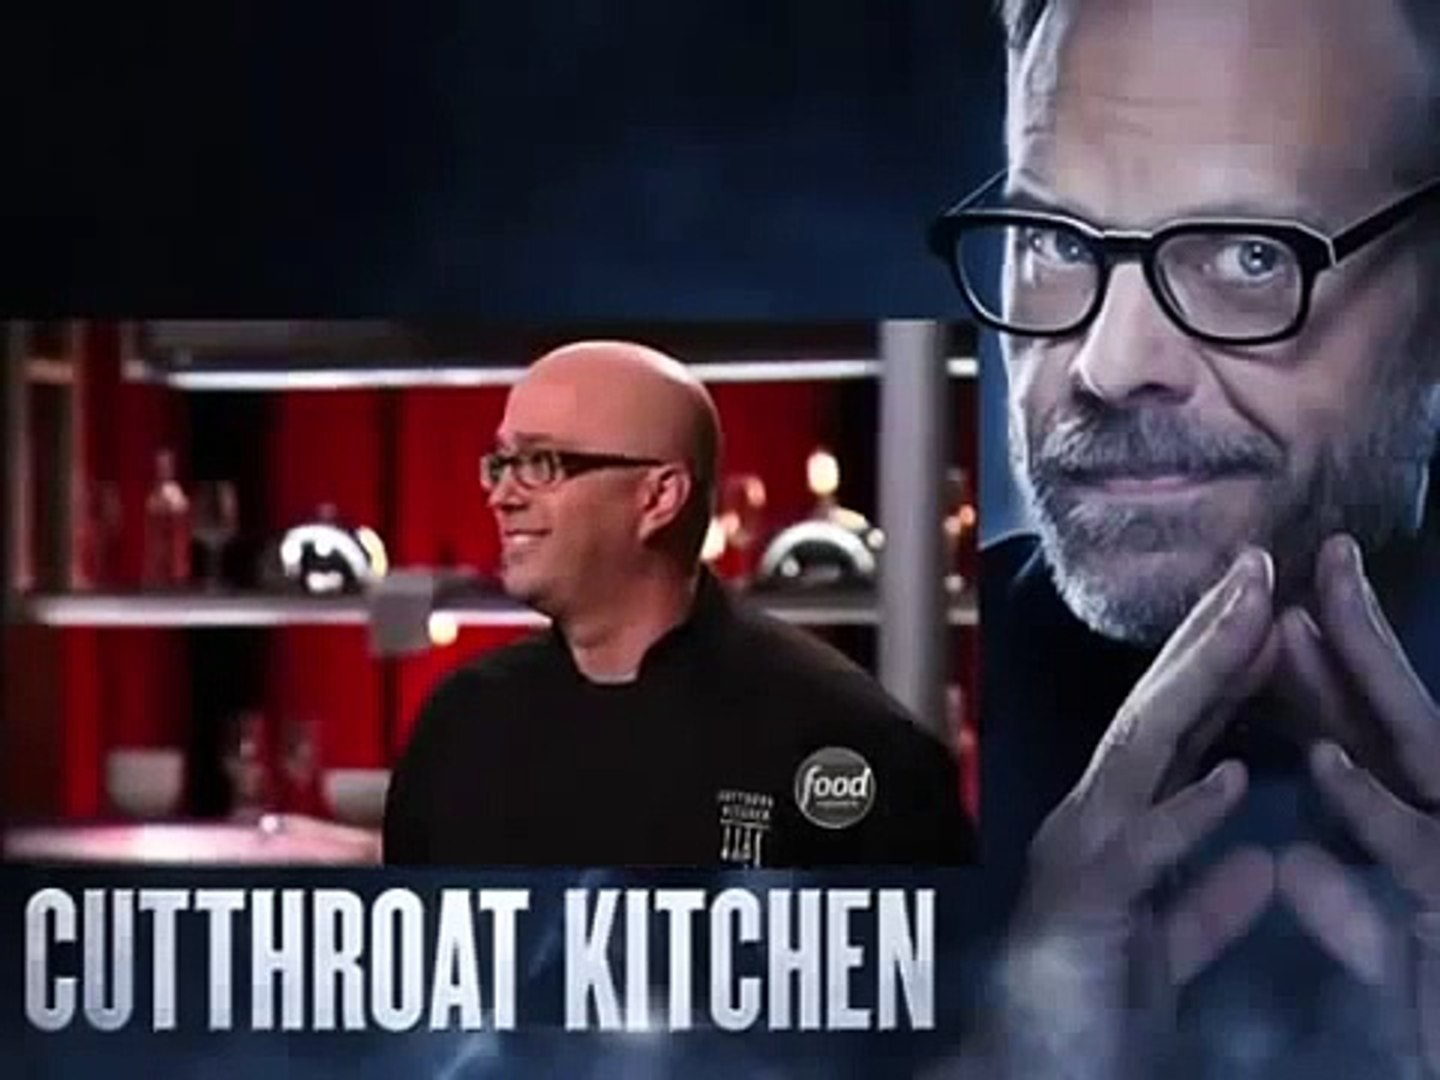 Cutthroat Kitchen Season 4 Episode 13 Tongue Thai ed